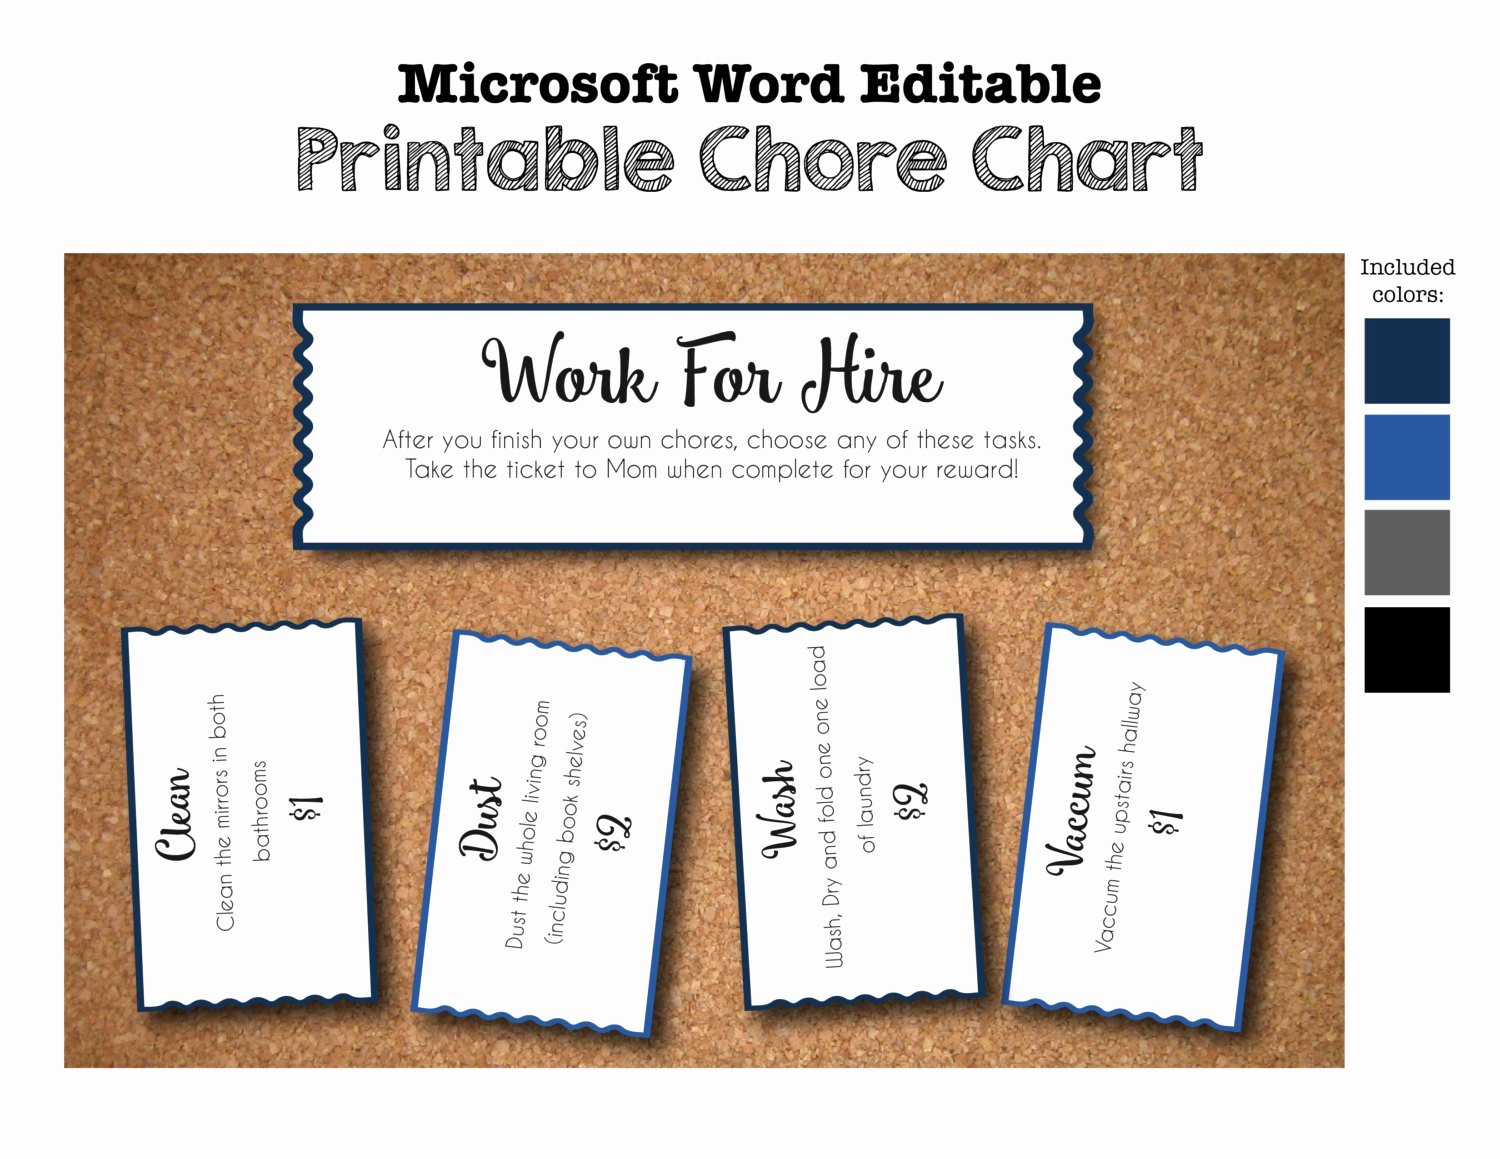 Work for Hire Template Unique Printable Chore Chart Work for Hire Tickets Coupons Voucher